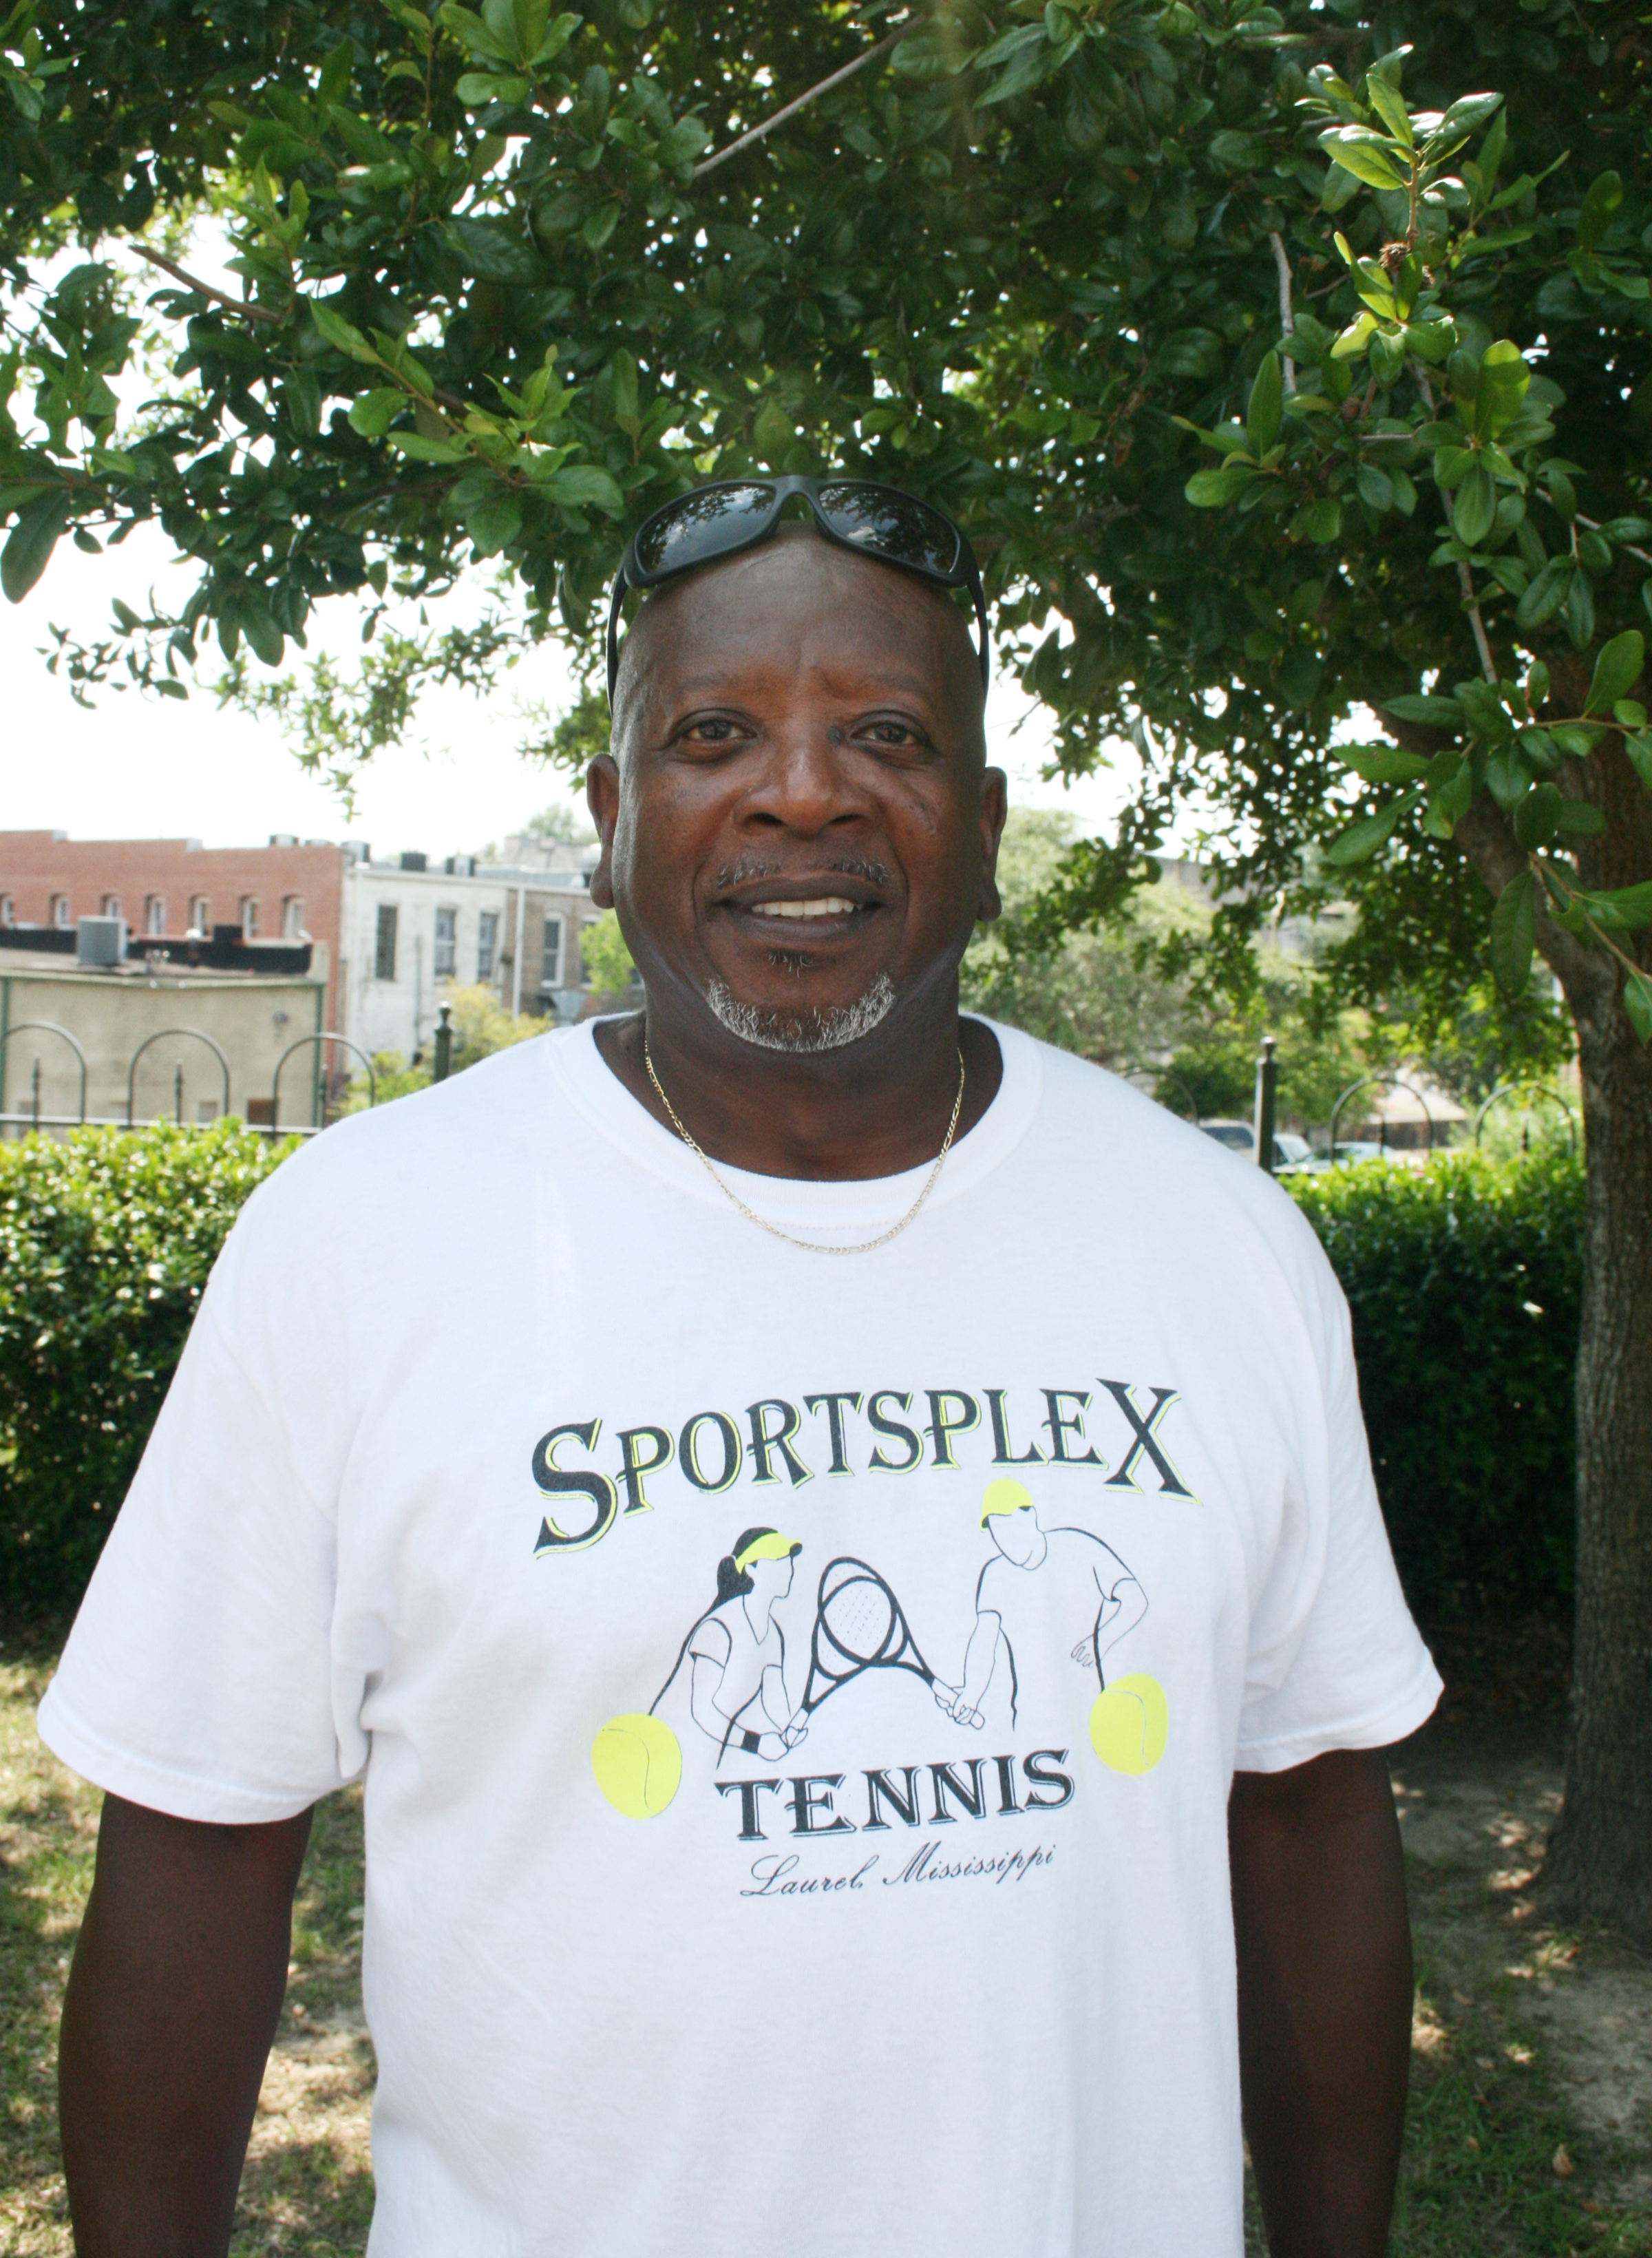 Local Tennis Pro Earns Ptr Certification The City Of Laurel Msthe